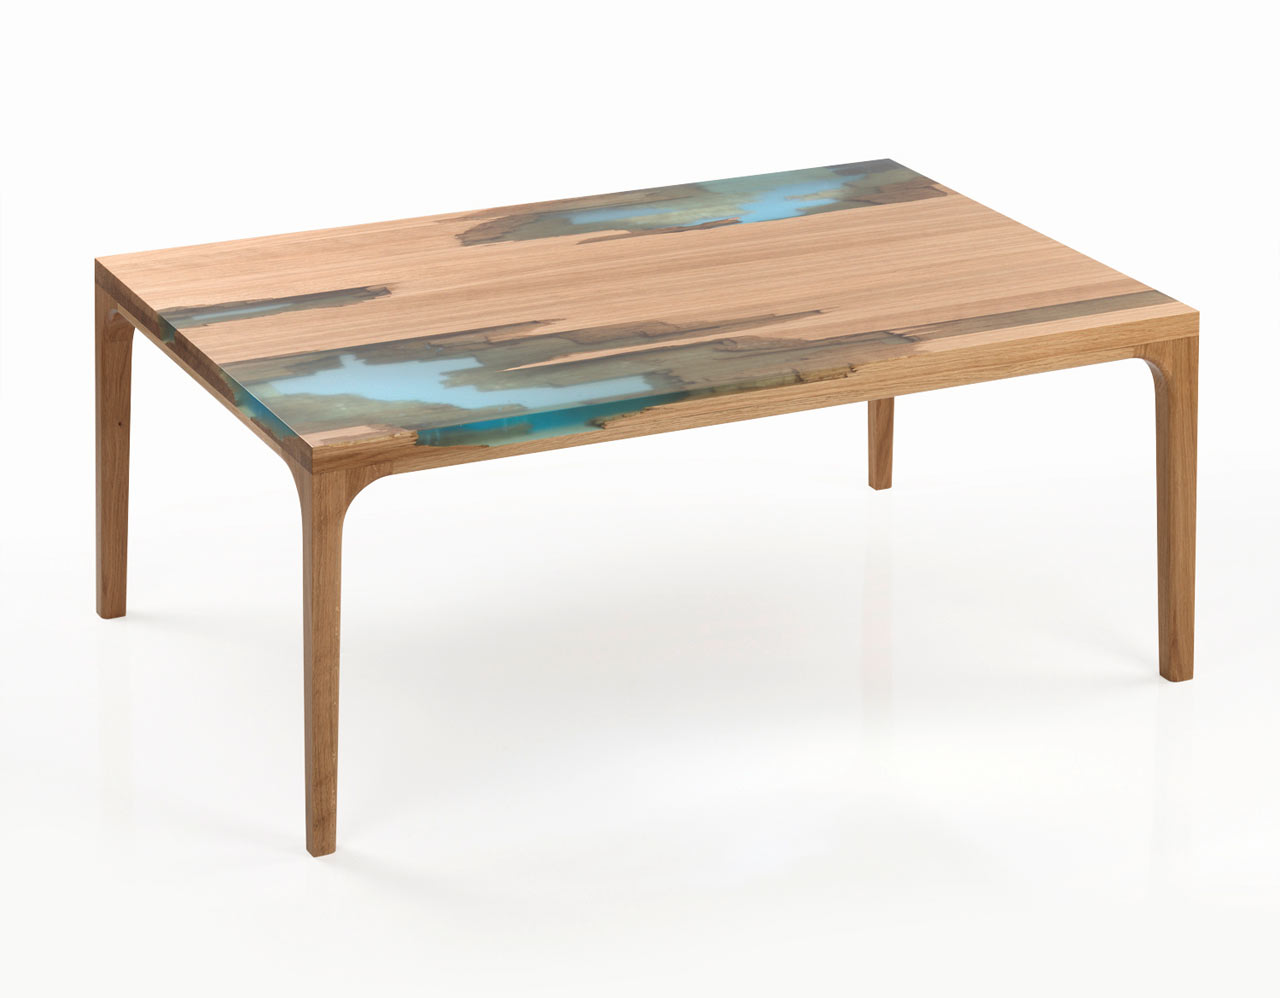 Wood and resin furniture inspired by self healing trees digsdigs Wooden furniture pics